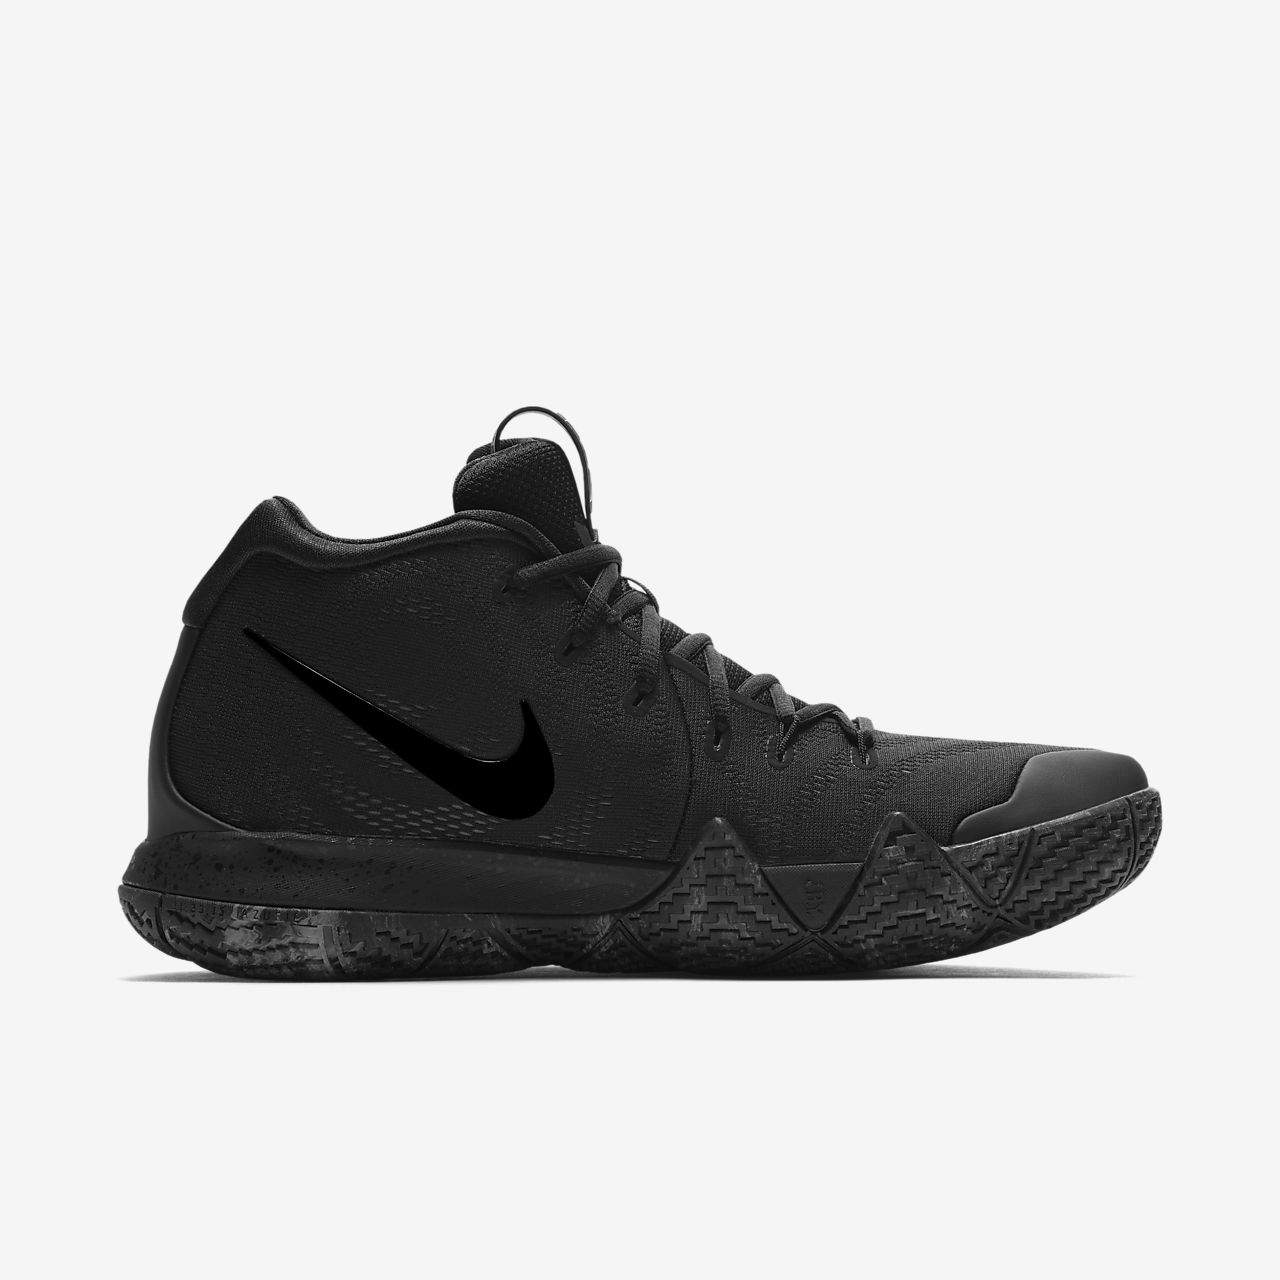 best cheap 5904b 70ae1 Low Resolution Kyrie 4 Basketball Shoe Kyrie 4 Basketball Shoe